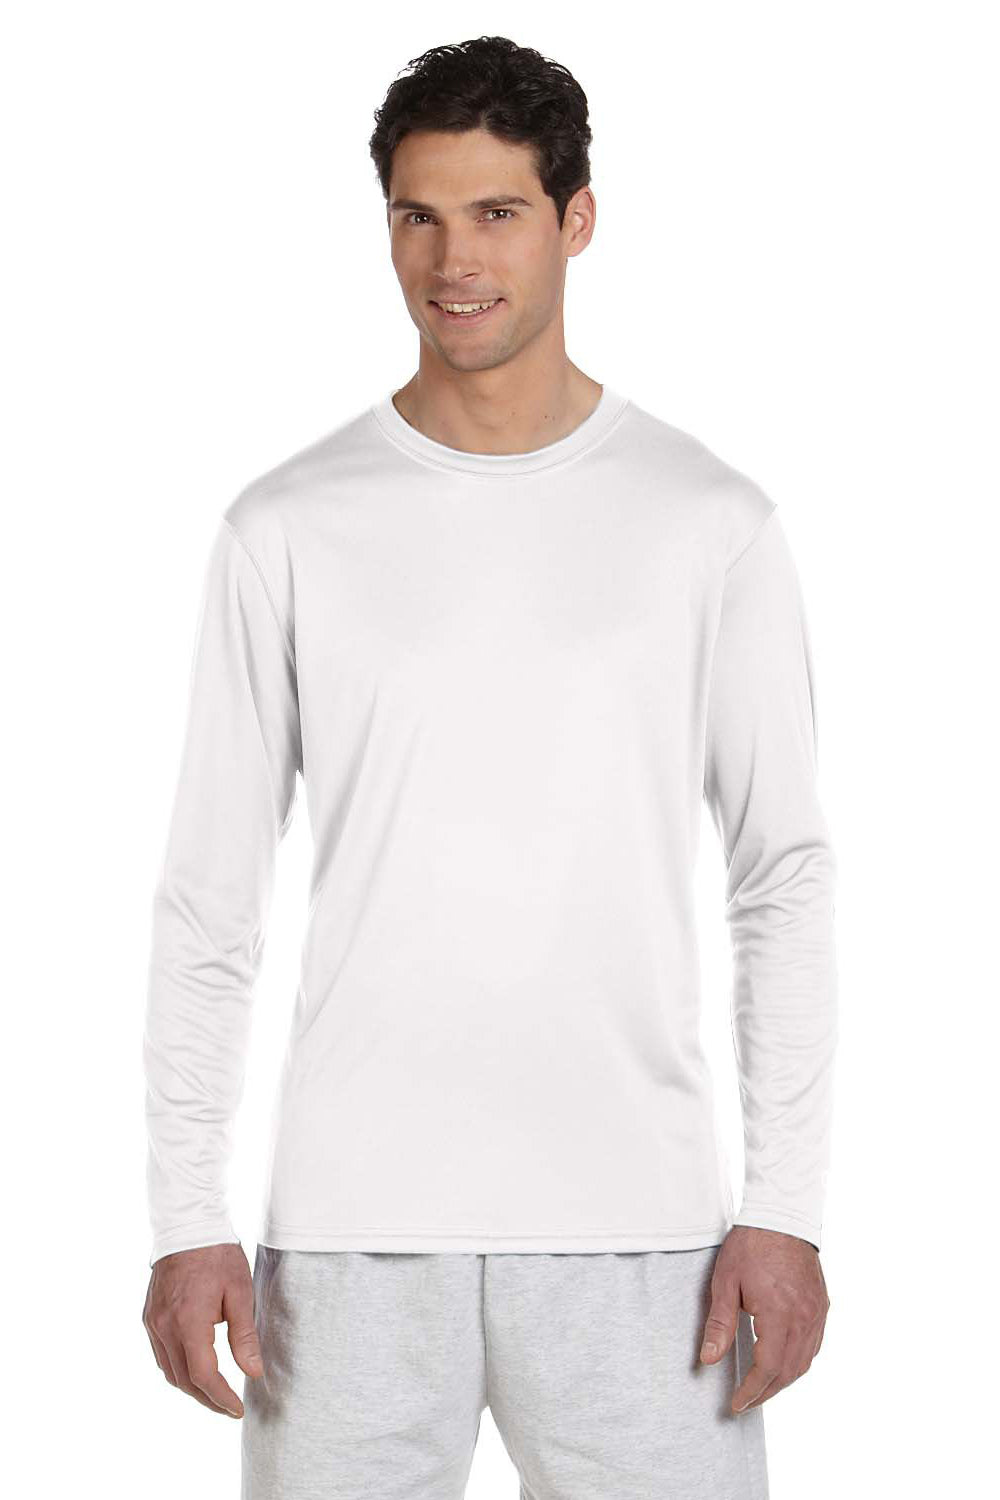 Champion CW26 Mens Double Dry Moisture Wicking Long Sleeve Crewneck T-Shirt White Front